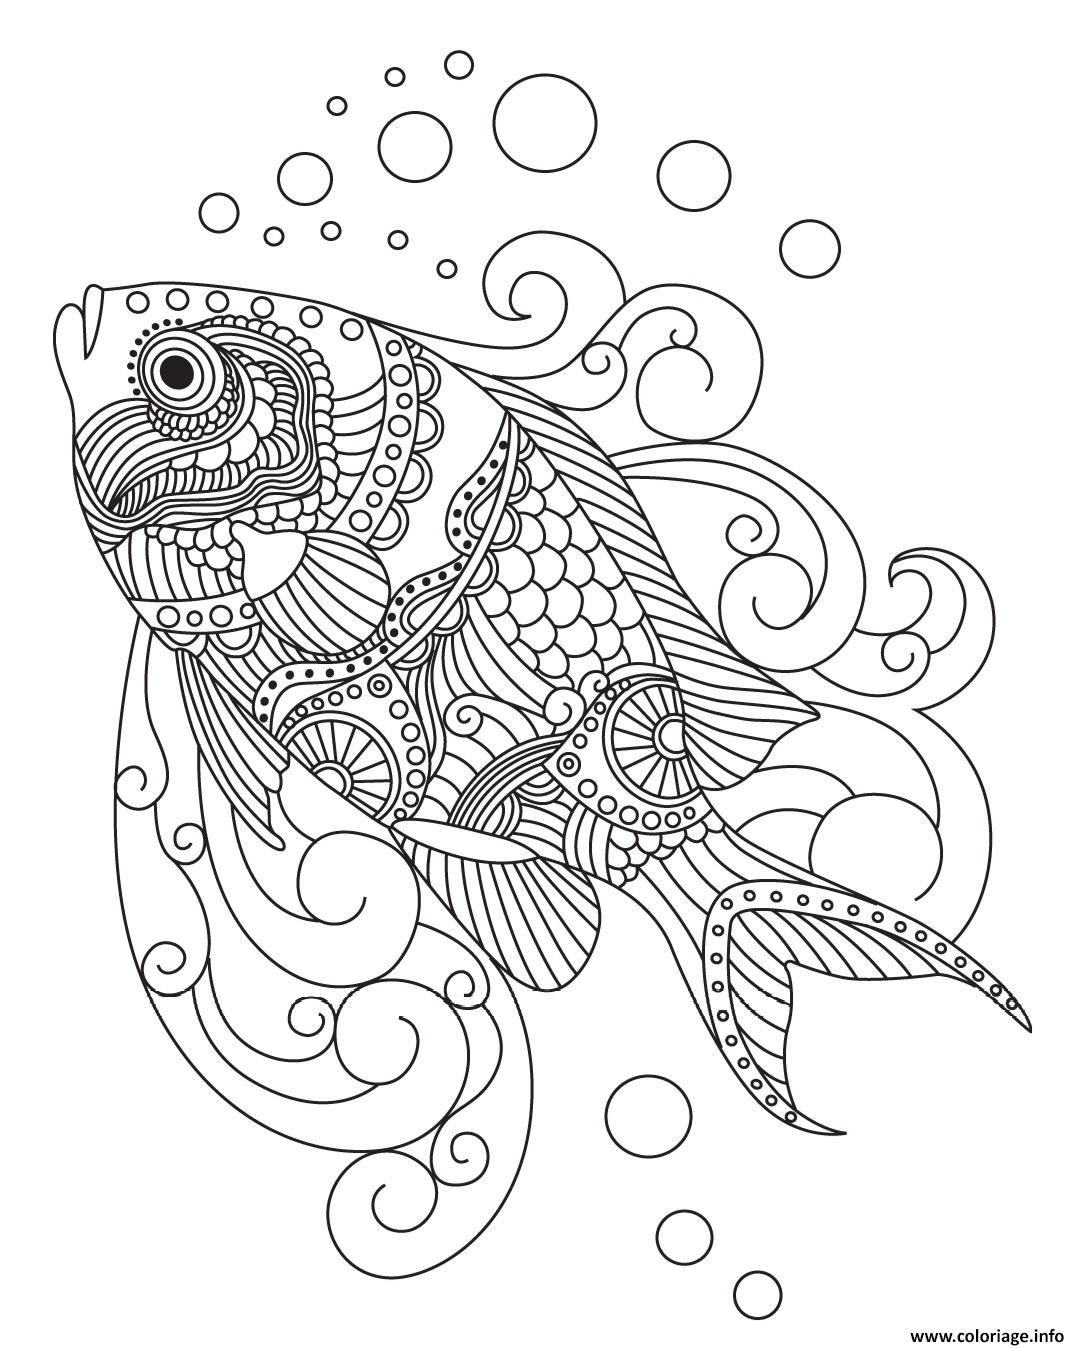 Outstanding Coloriage Mandala Poissons Egypte Gallery - Framing ...